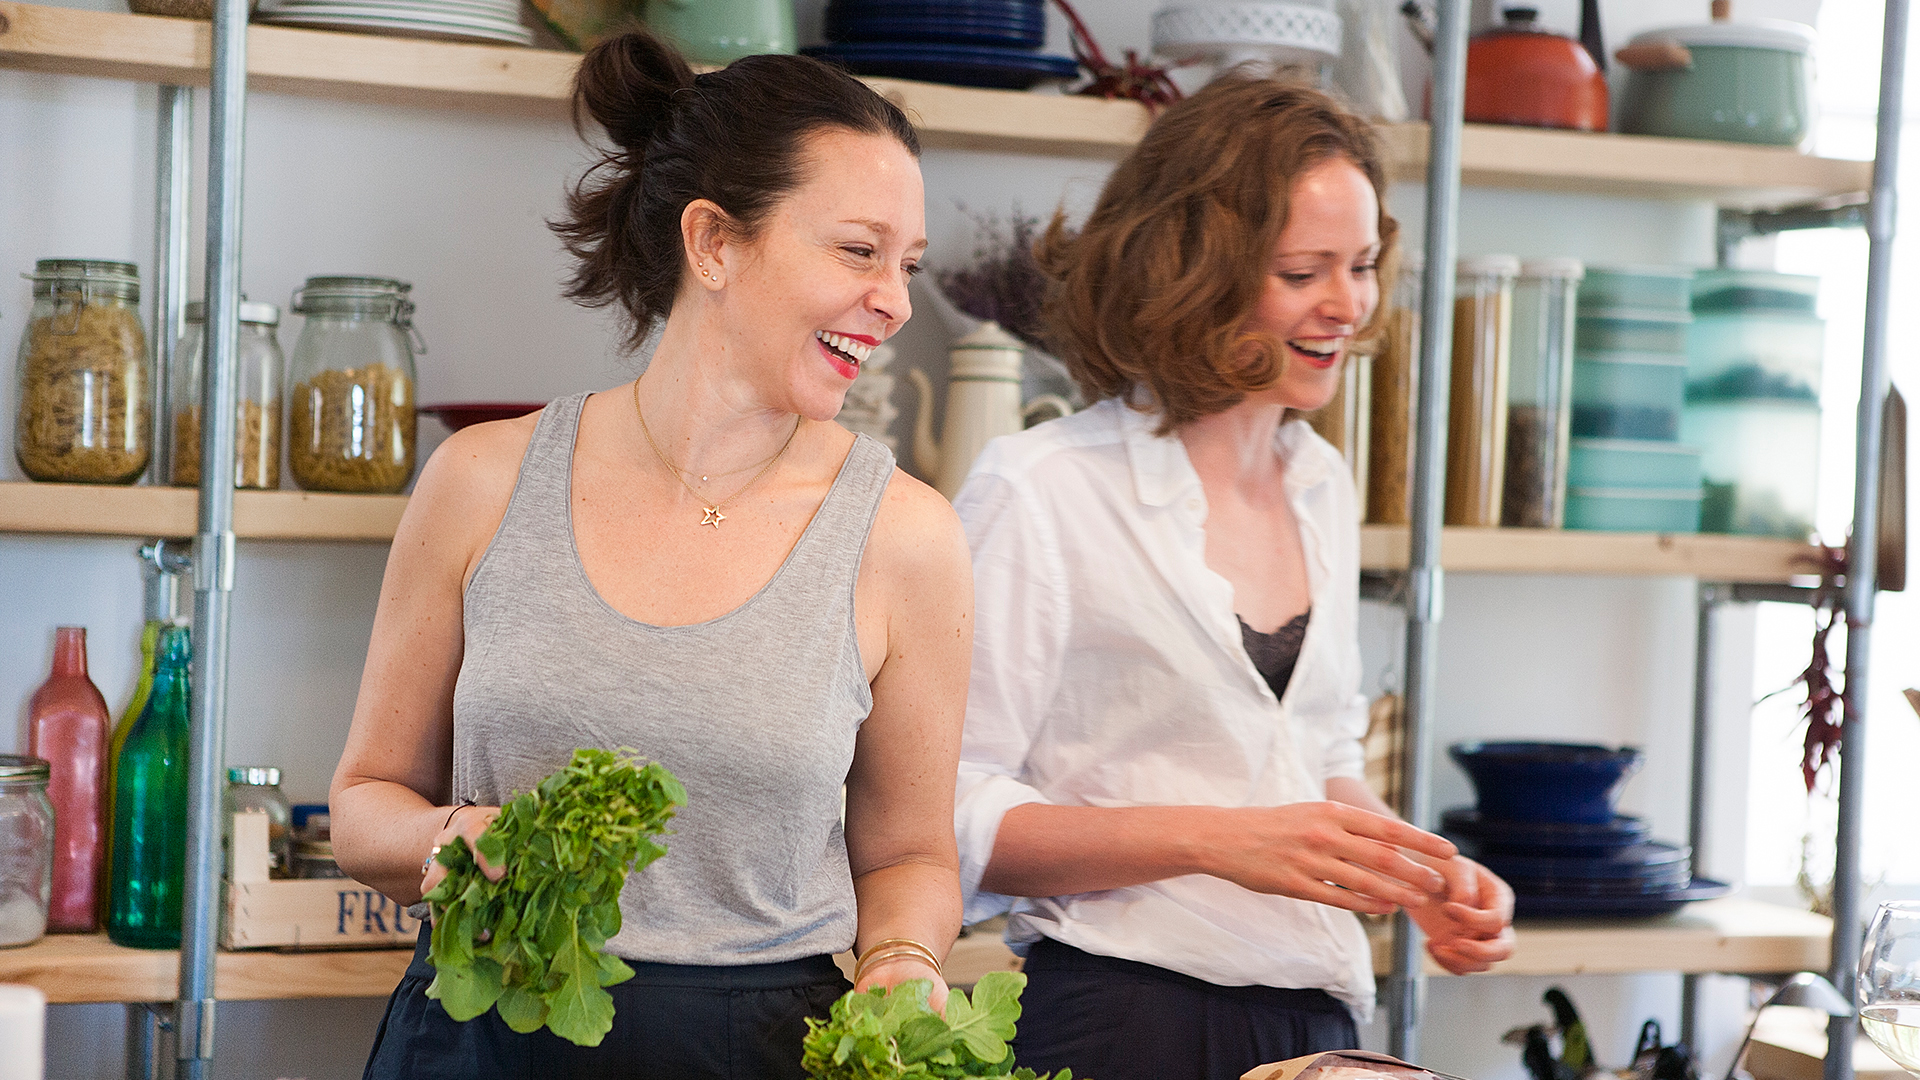 Alanna-Lawley-from-Foodadit-and-Alison-Beckner-from-Scout-Consulting-preparing-brunch-together